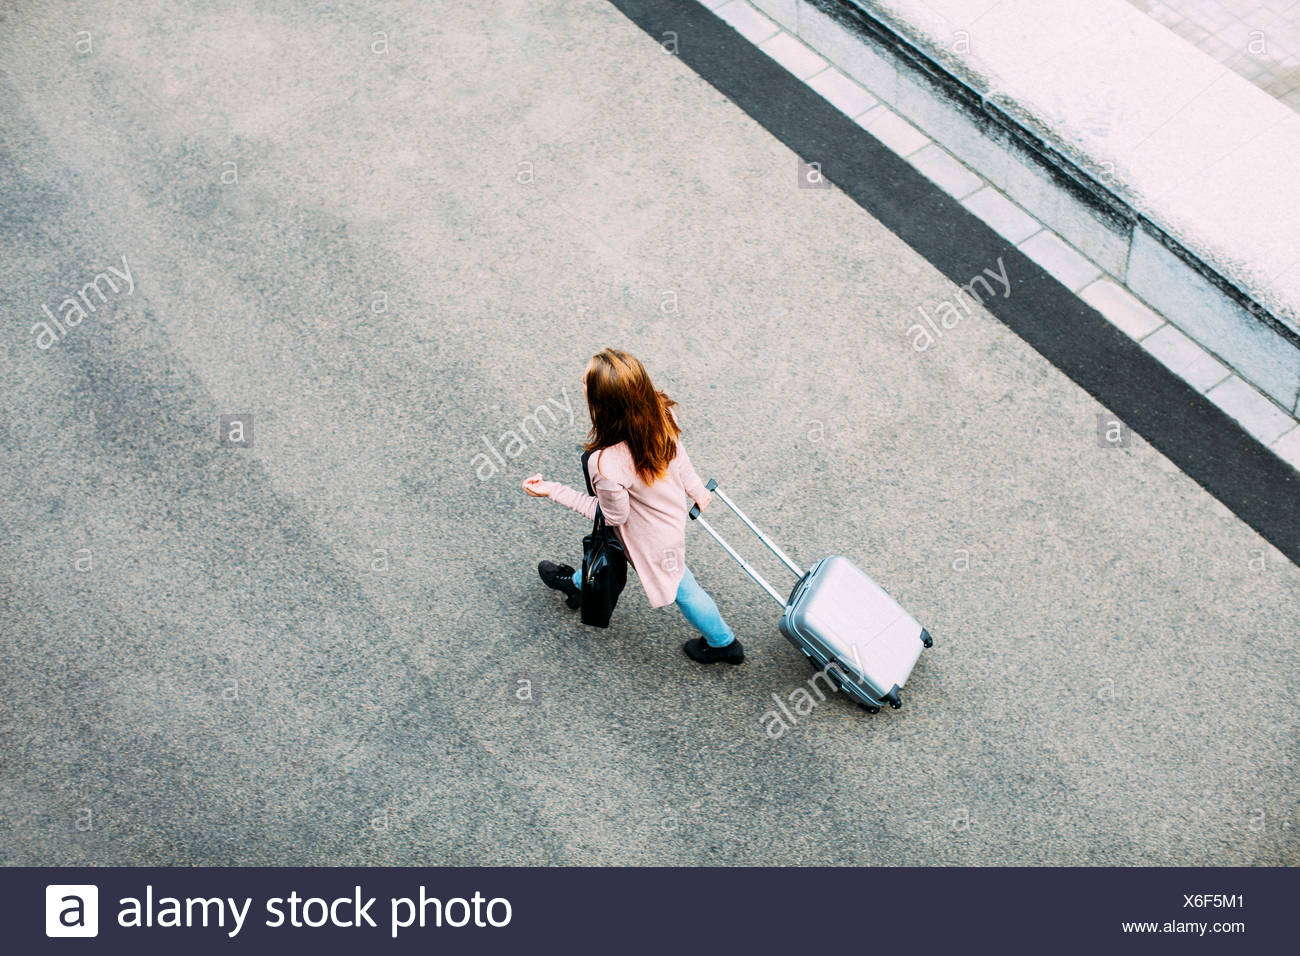 Top view of walking woman with wheeled luggage - Stock Image